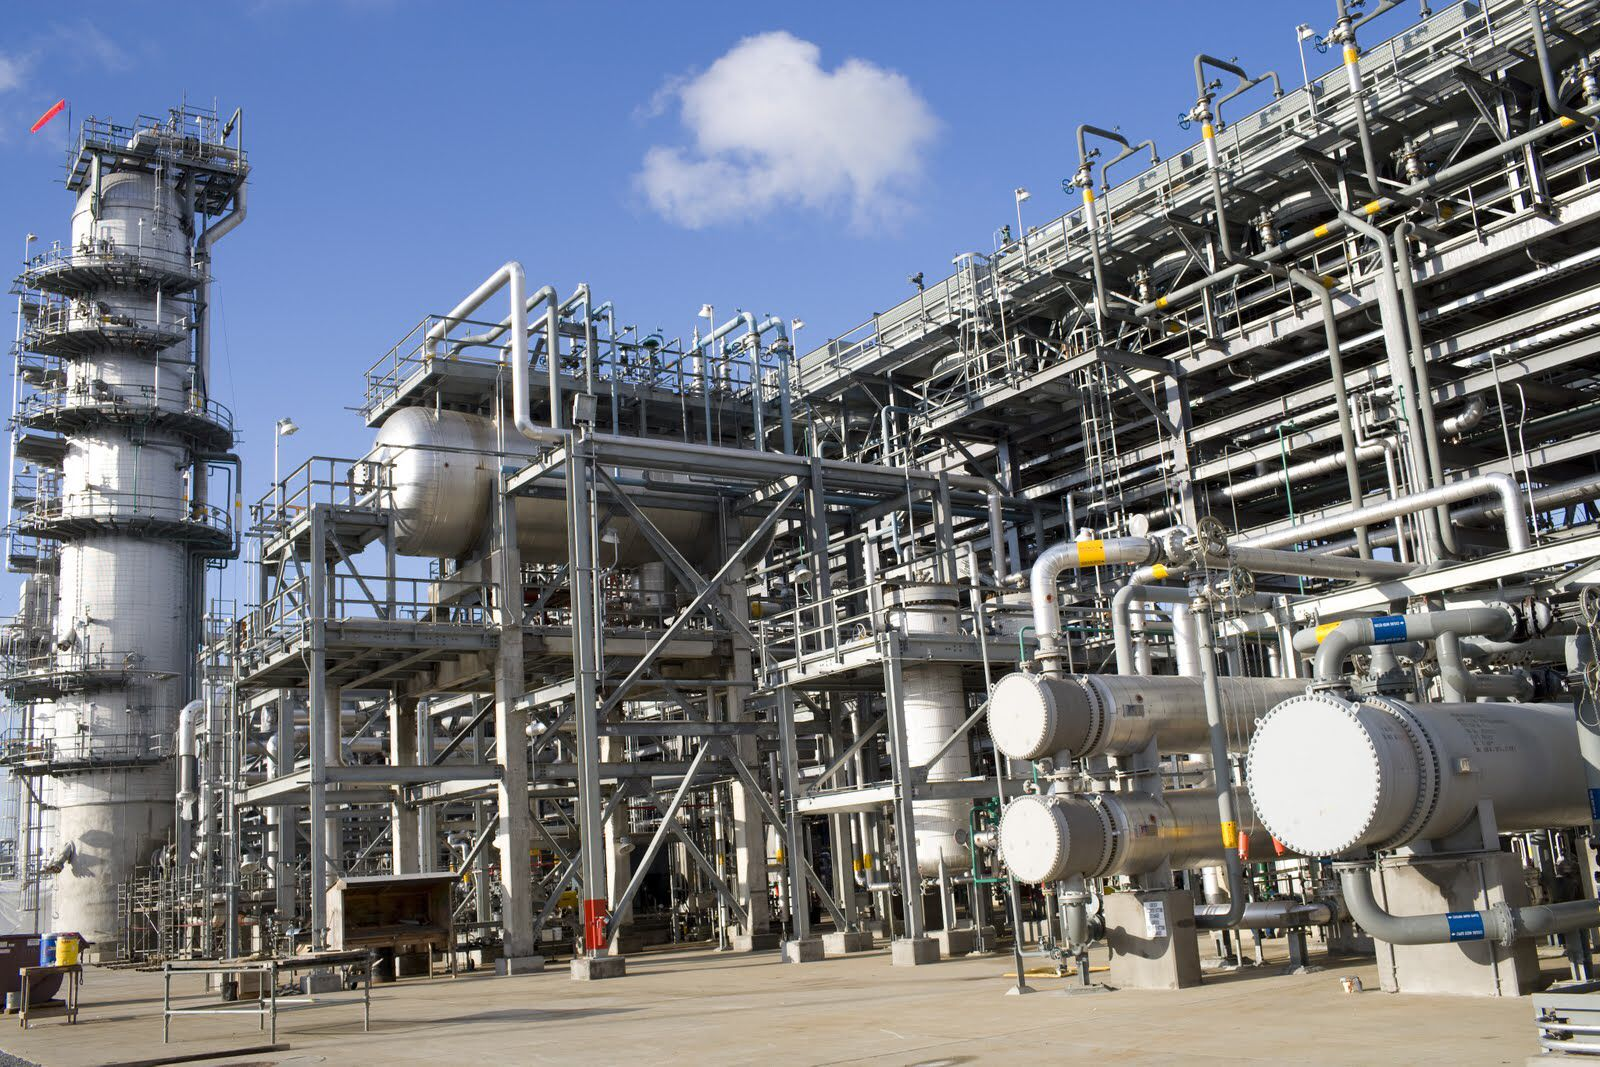 Oil prices fell below 56 a barrel on Monday as Iran and